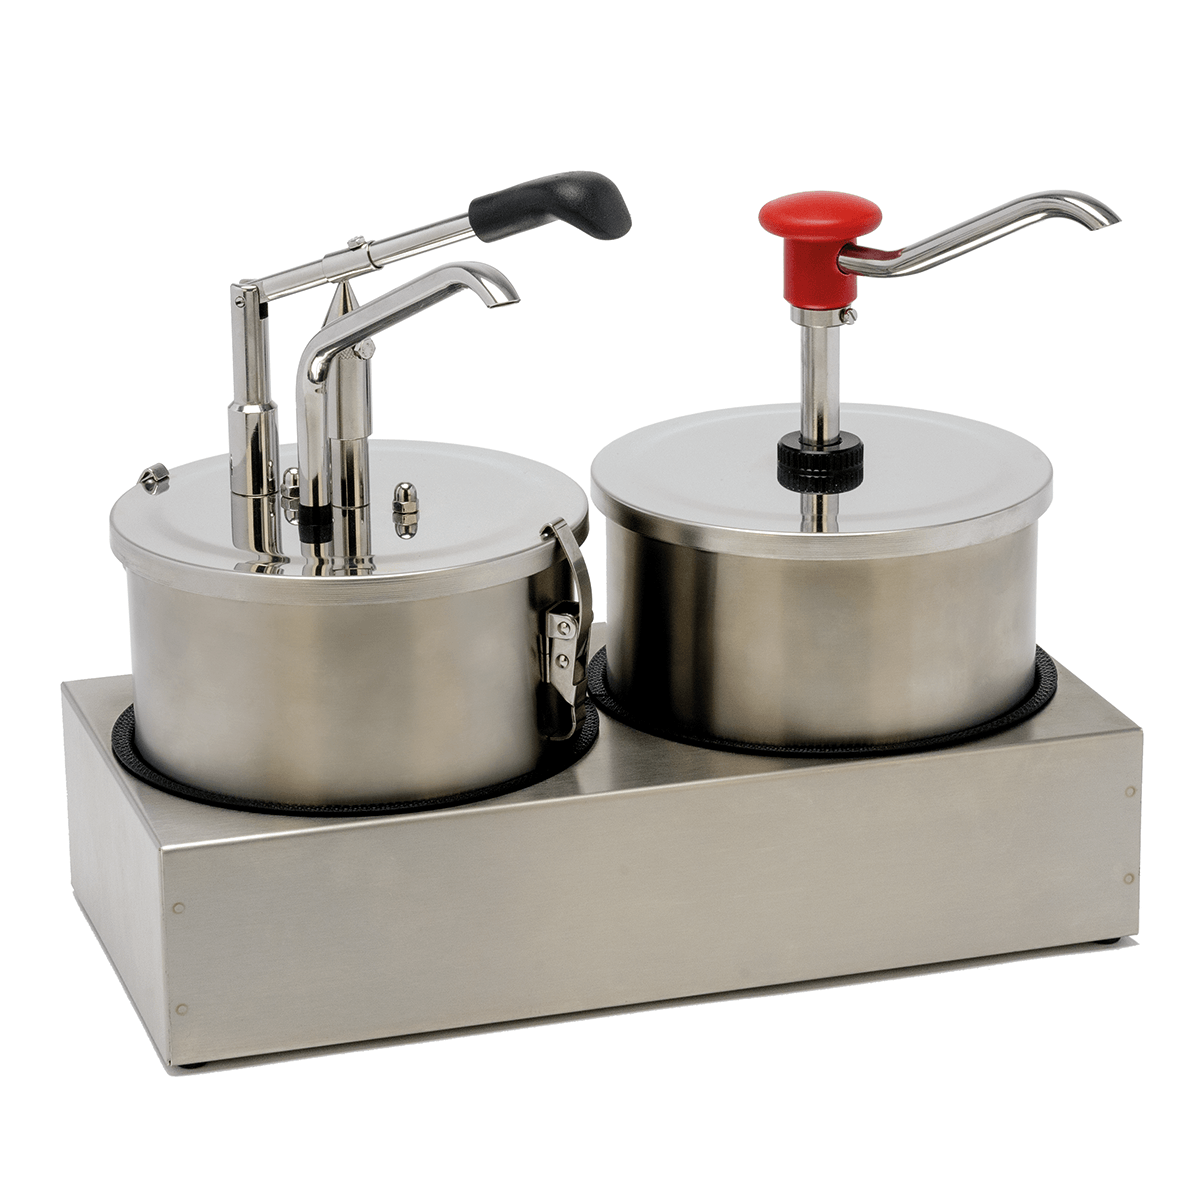 Sauce Bar Lever-action Or Push Button Dispensers